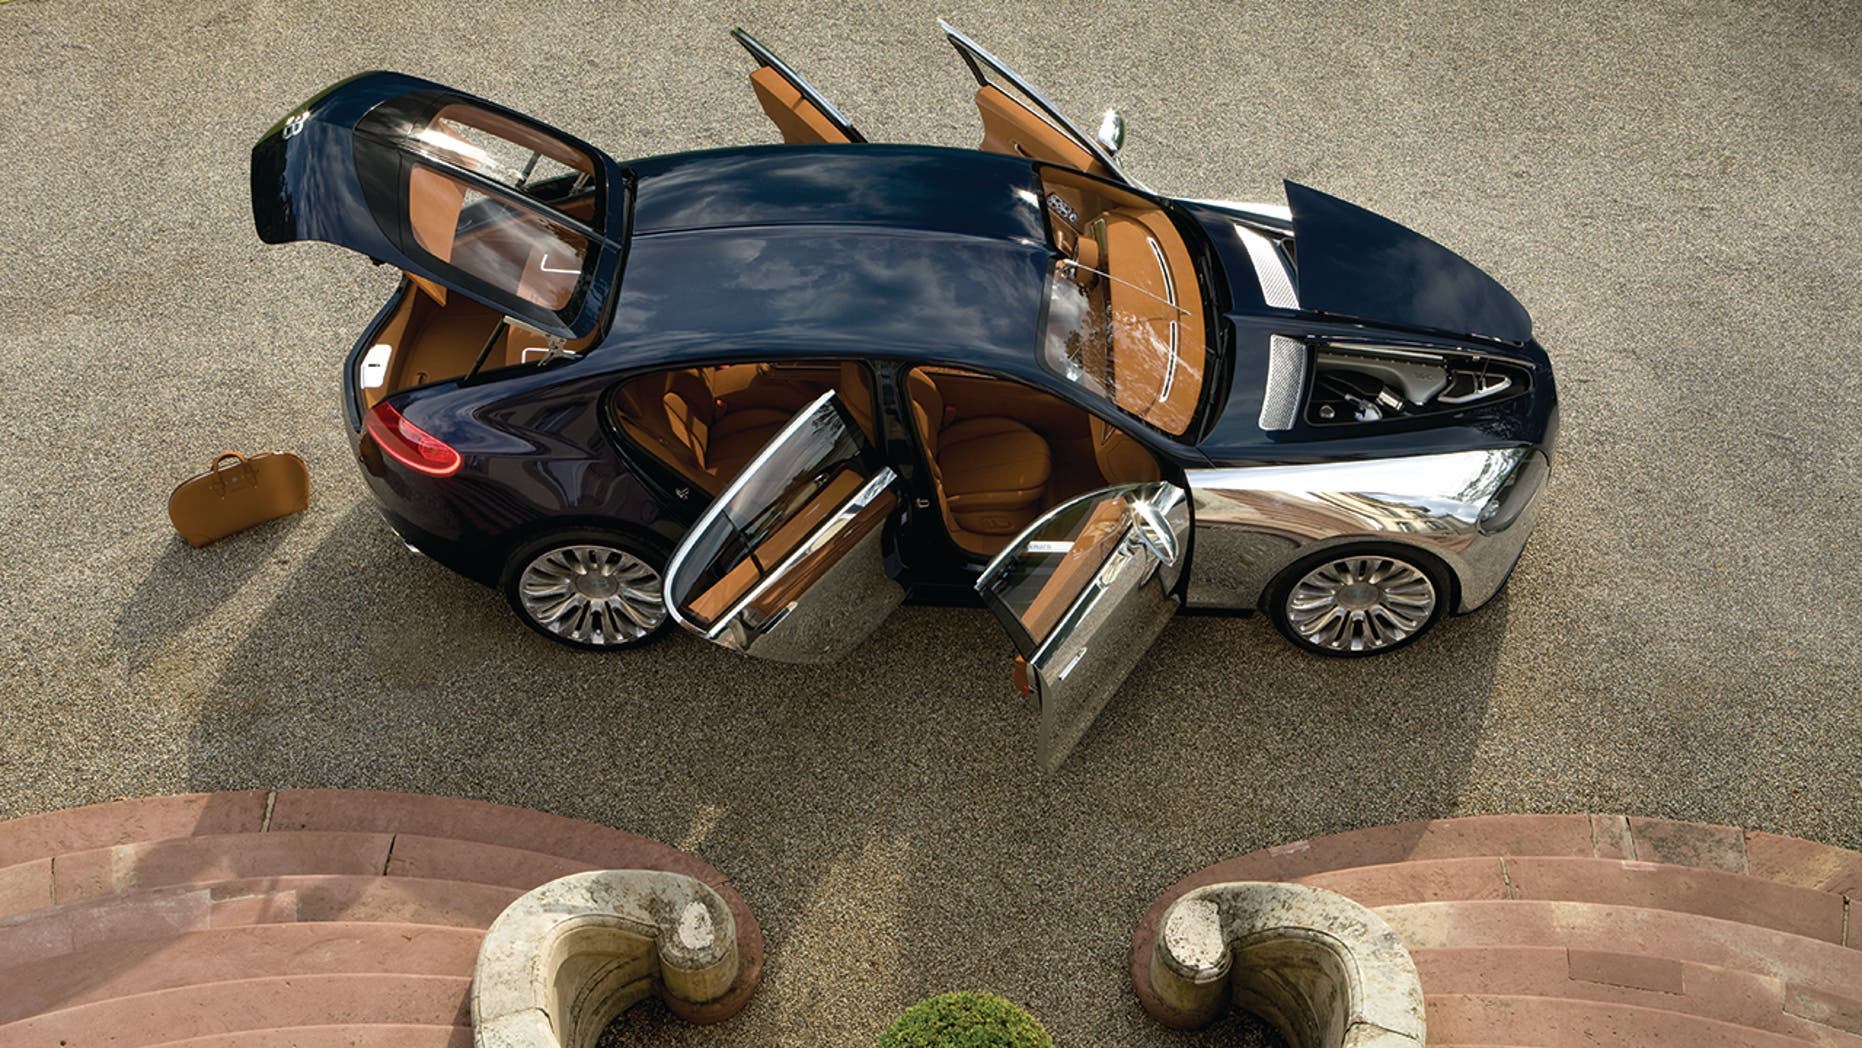 The liftback Bugatti Galibier is the closest the brand will get to an SUV